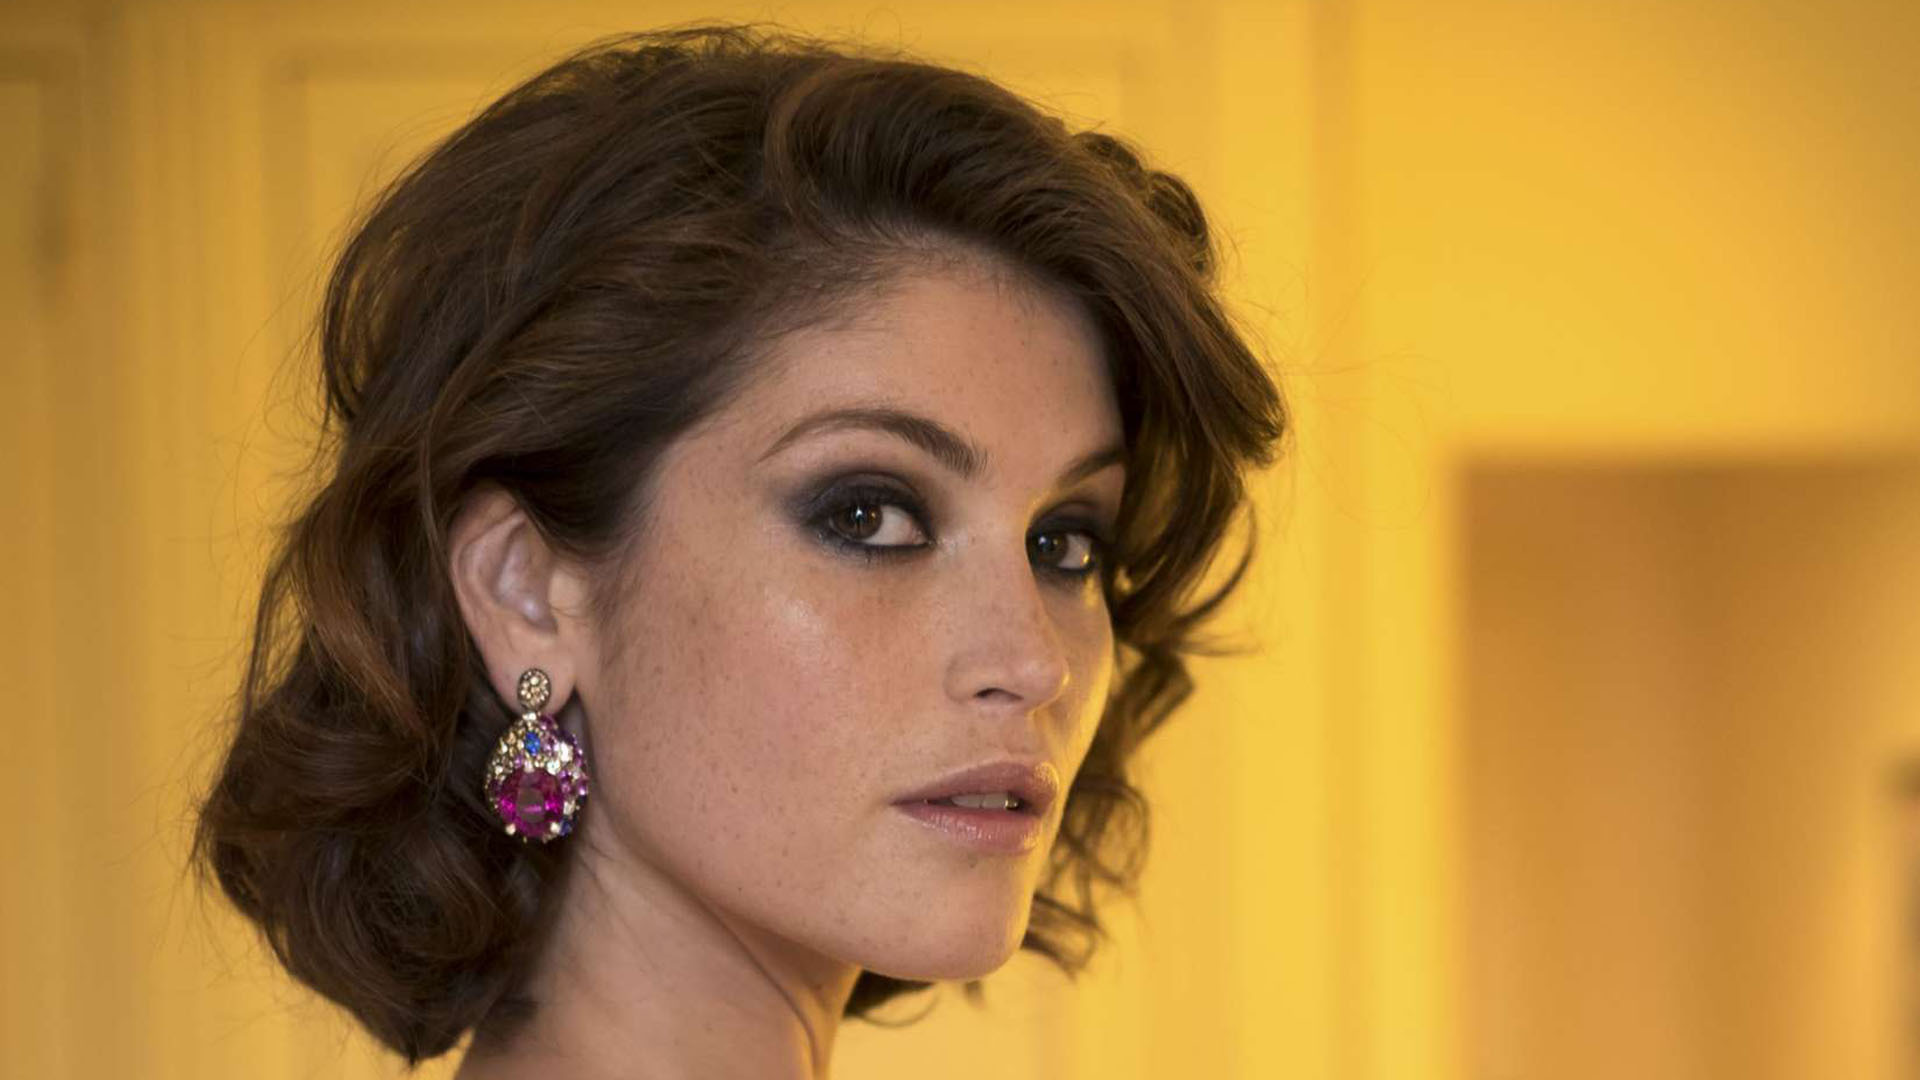 Gemma Arterton Computer Wallpaper